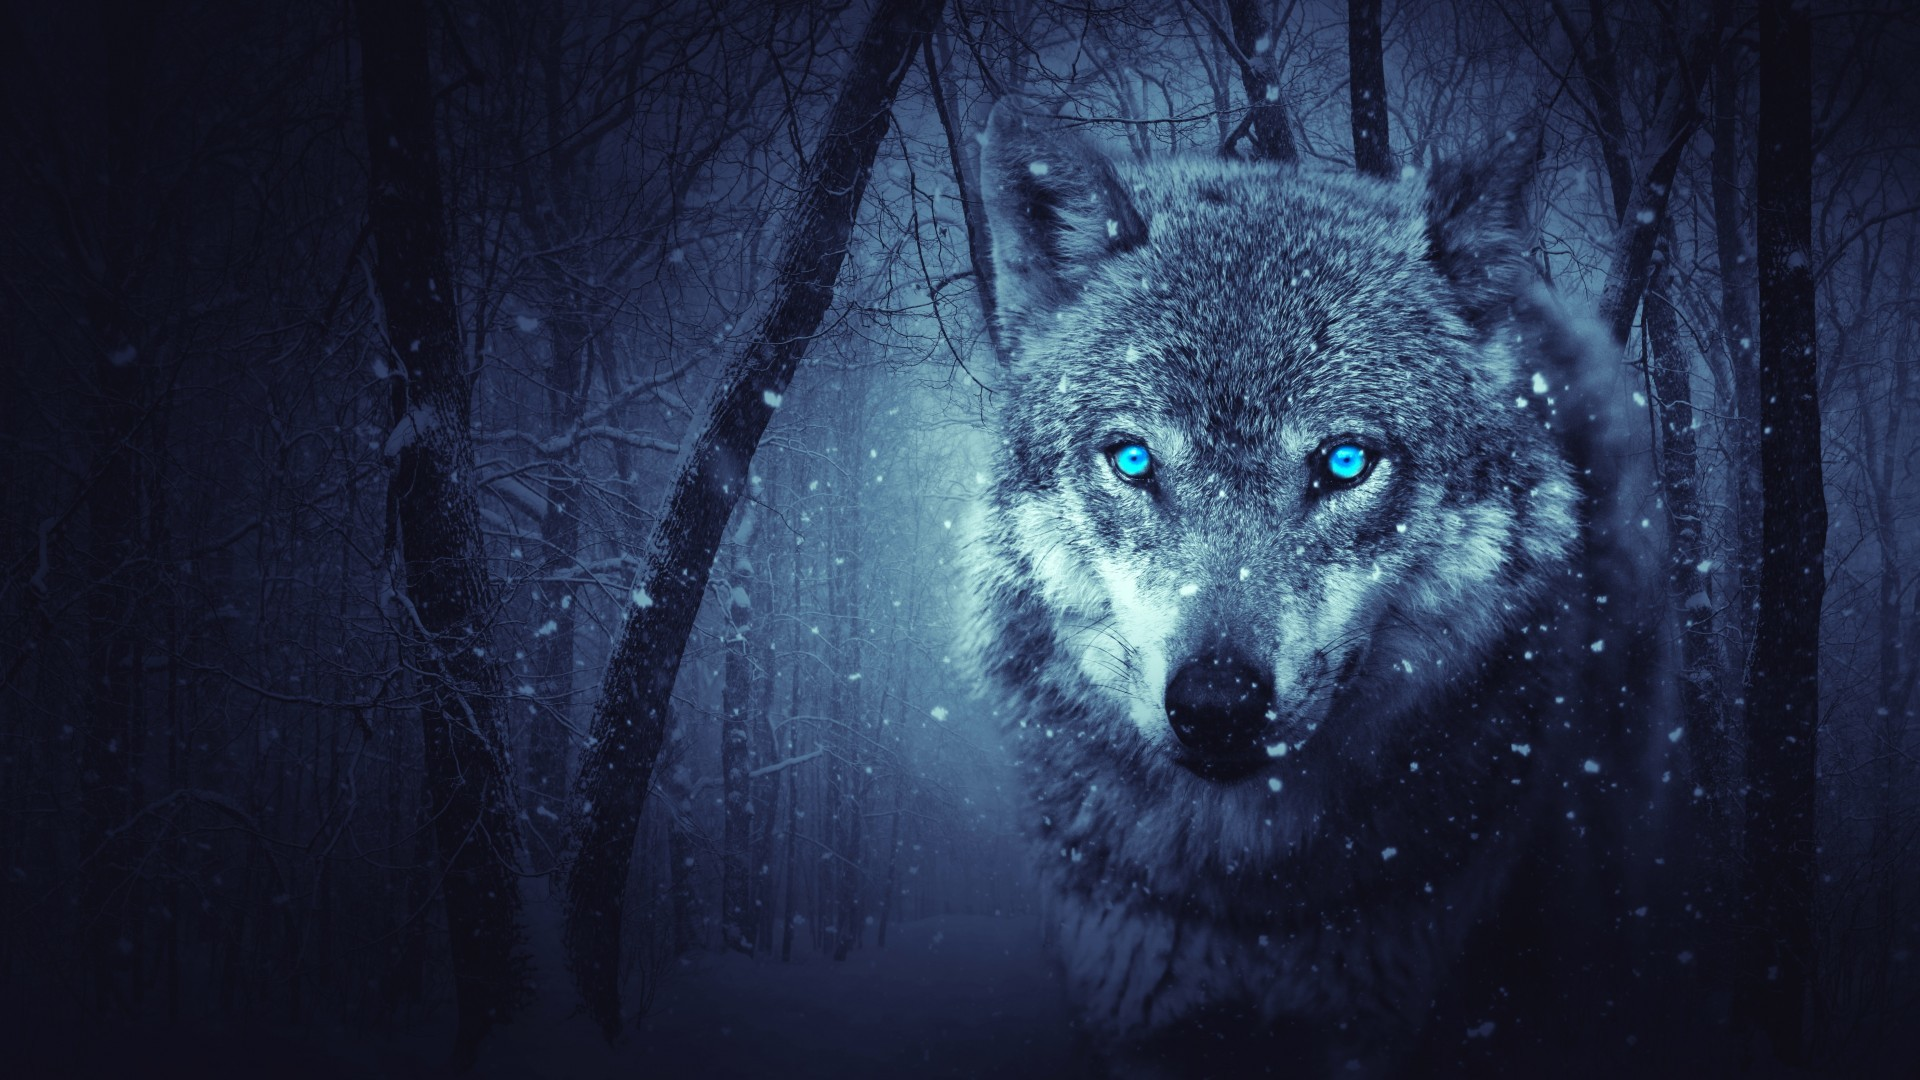 Res: 1920x1080, Wold Wolf Blue Eyes Scary Snowfall Winter Hd Wallpaper